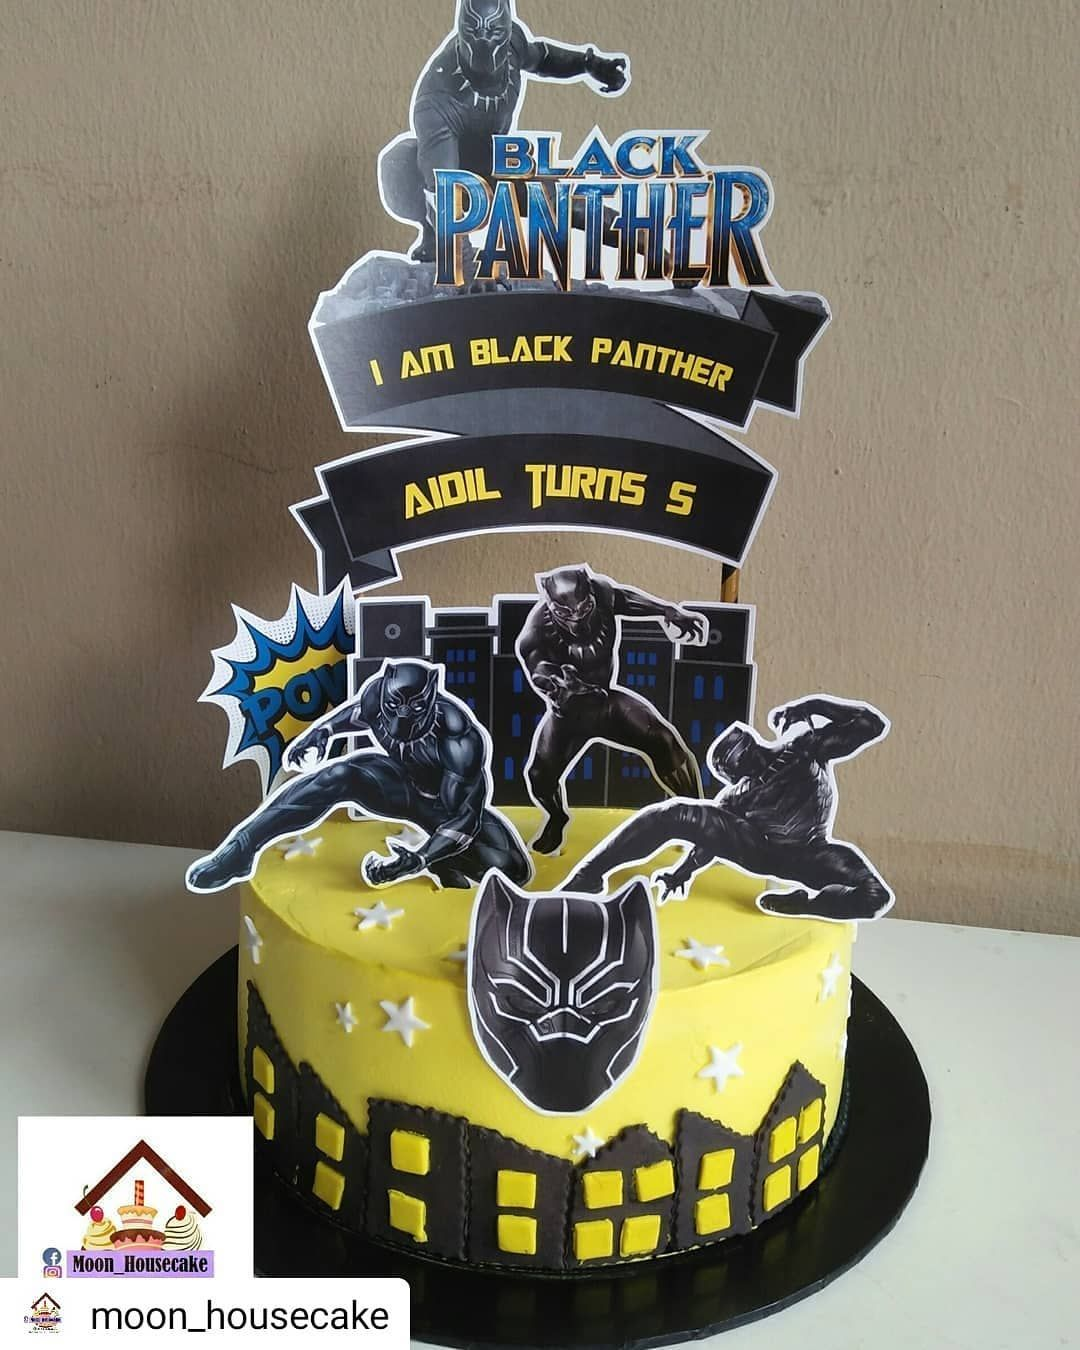 35+ Black panther happy birthday cake topper ideas in 2021